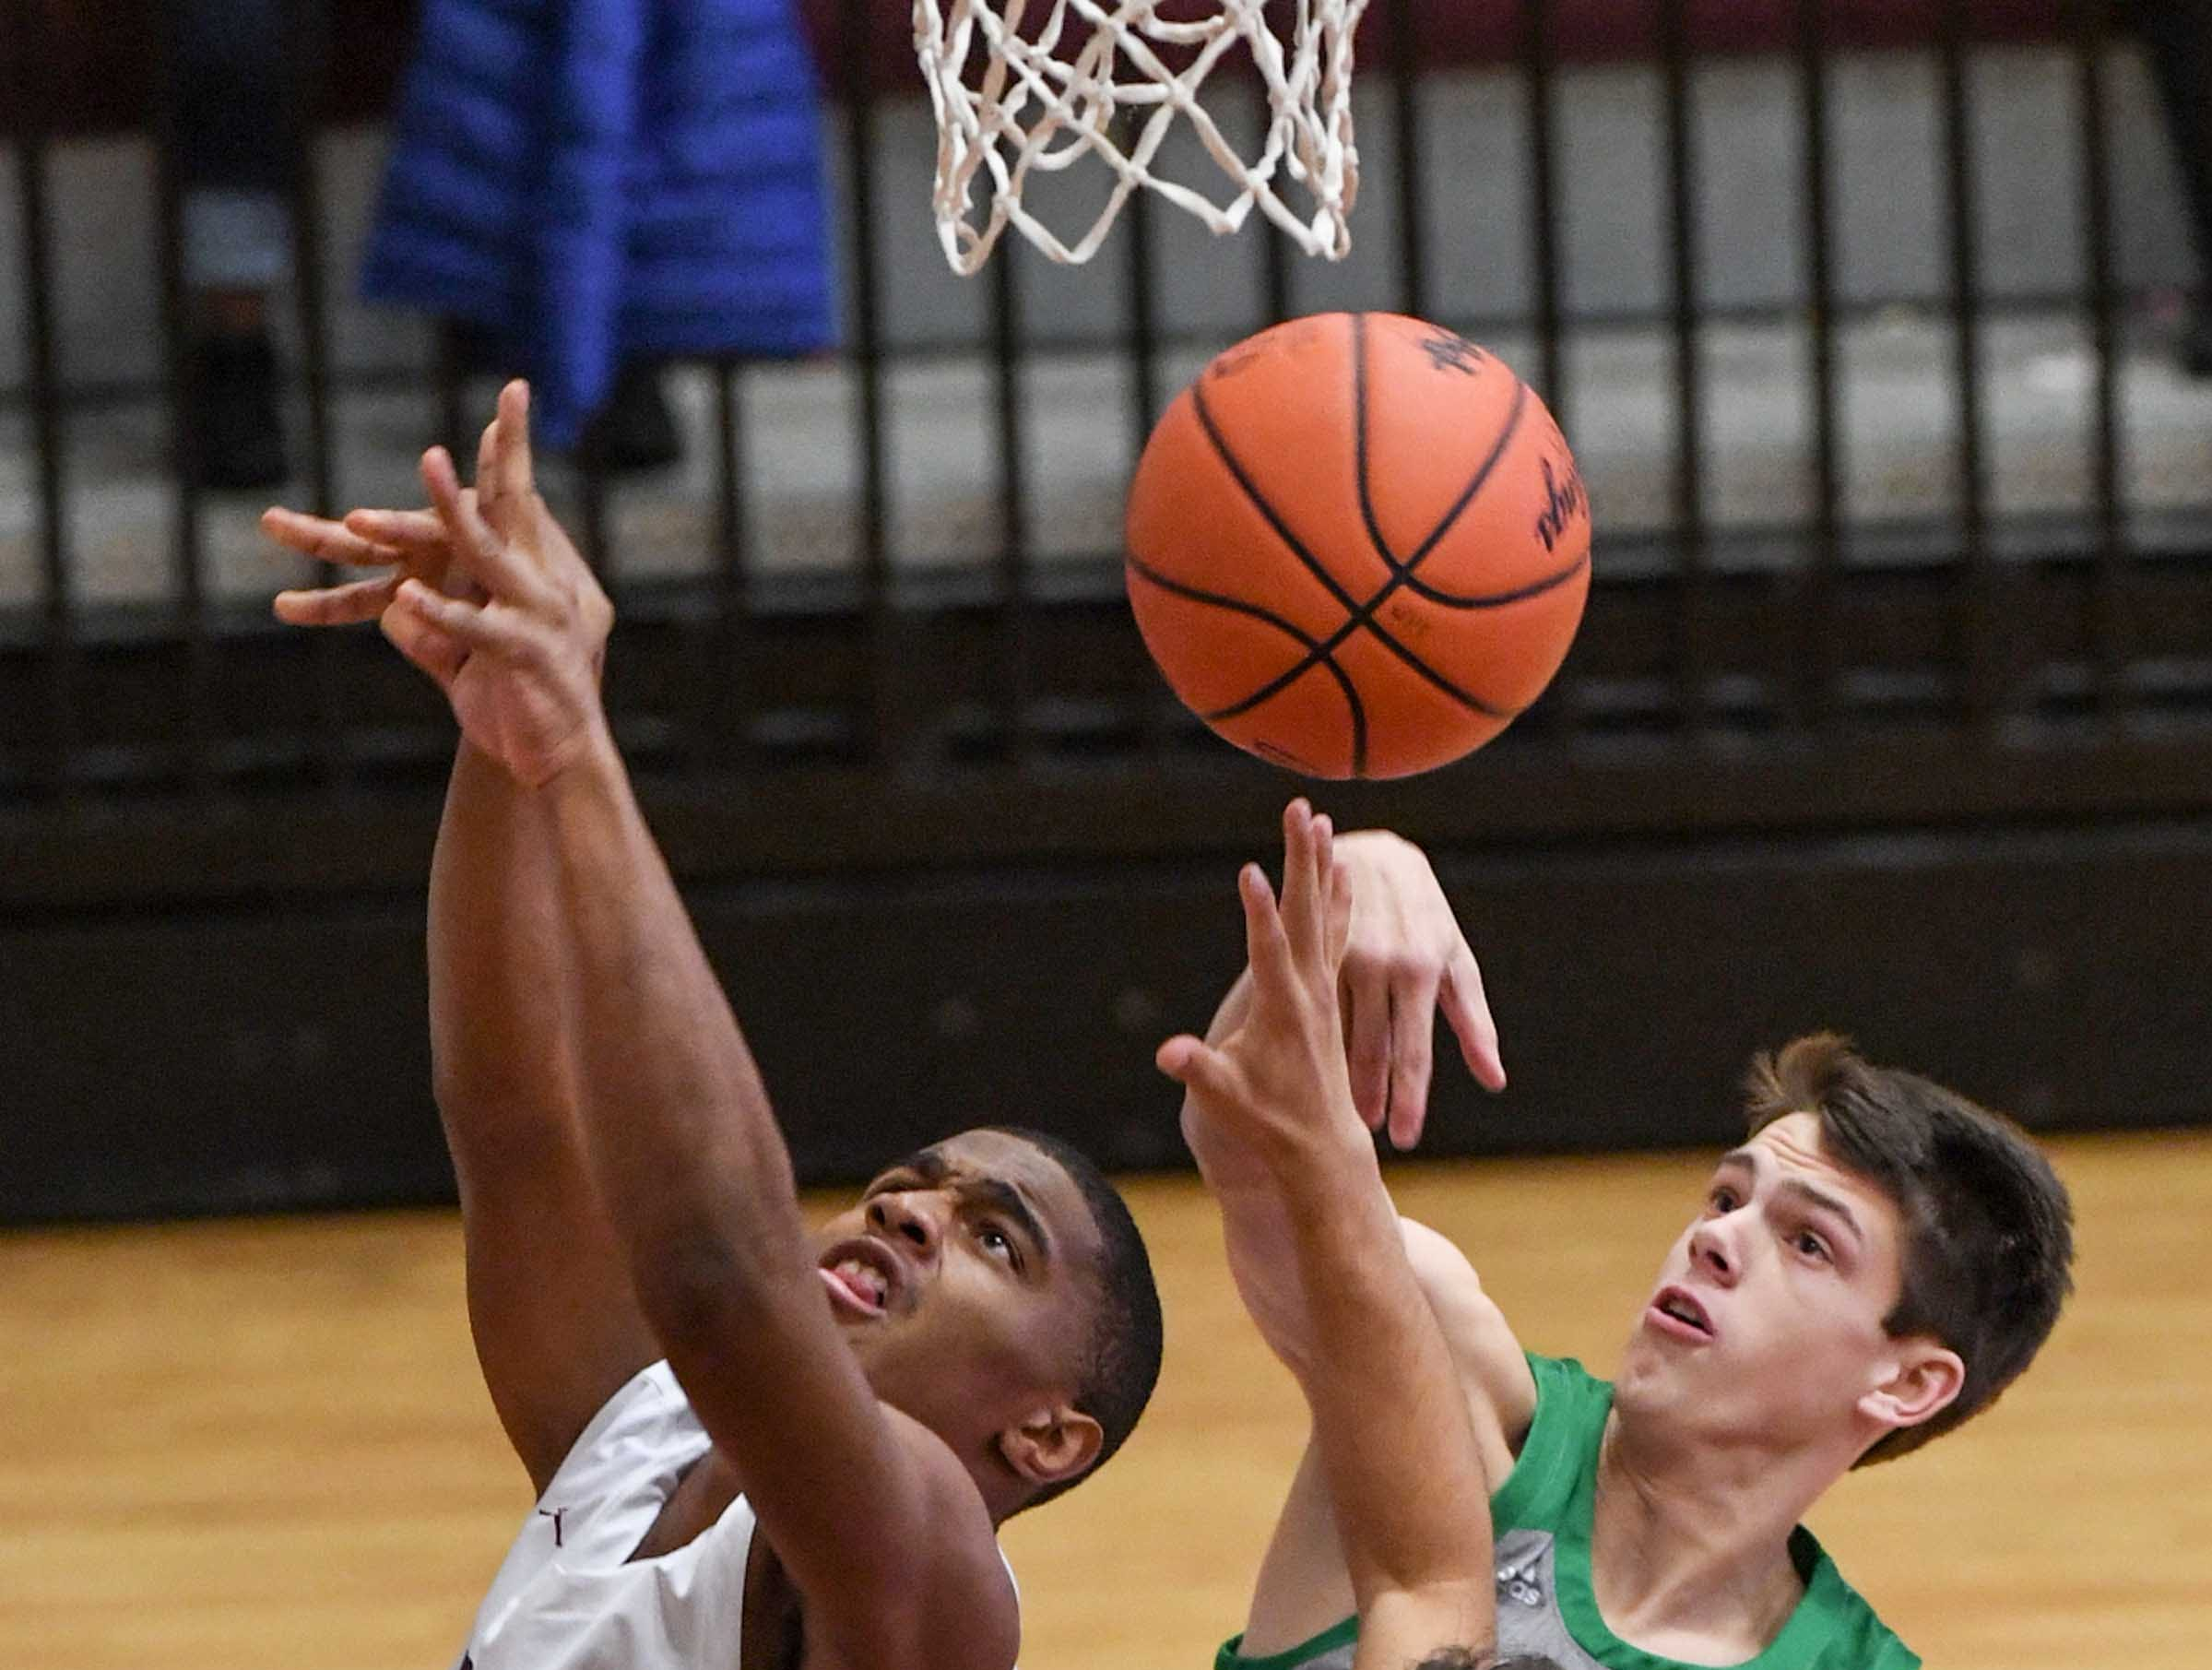 Westside senior Paul Johnson(23) and Easley senior Tanner Leisten(23) reach for a ball during the first quarter at Westside High School in Anderson on Friday.